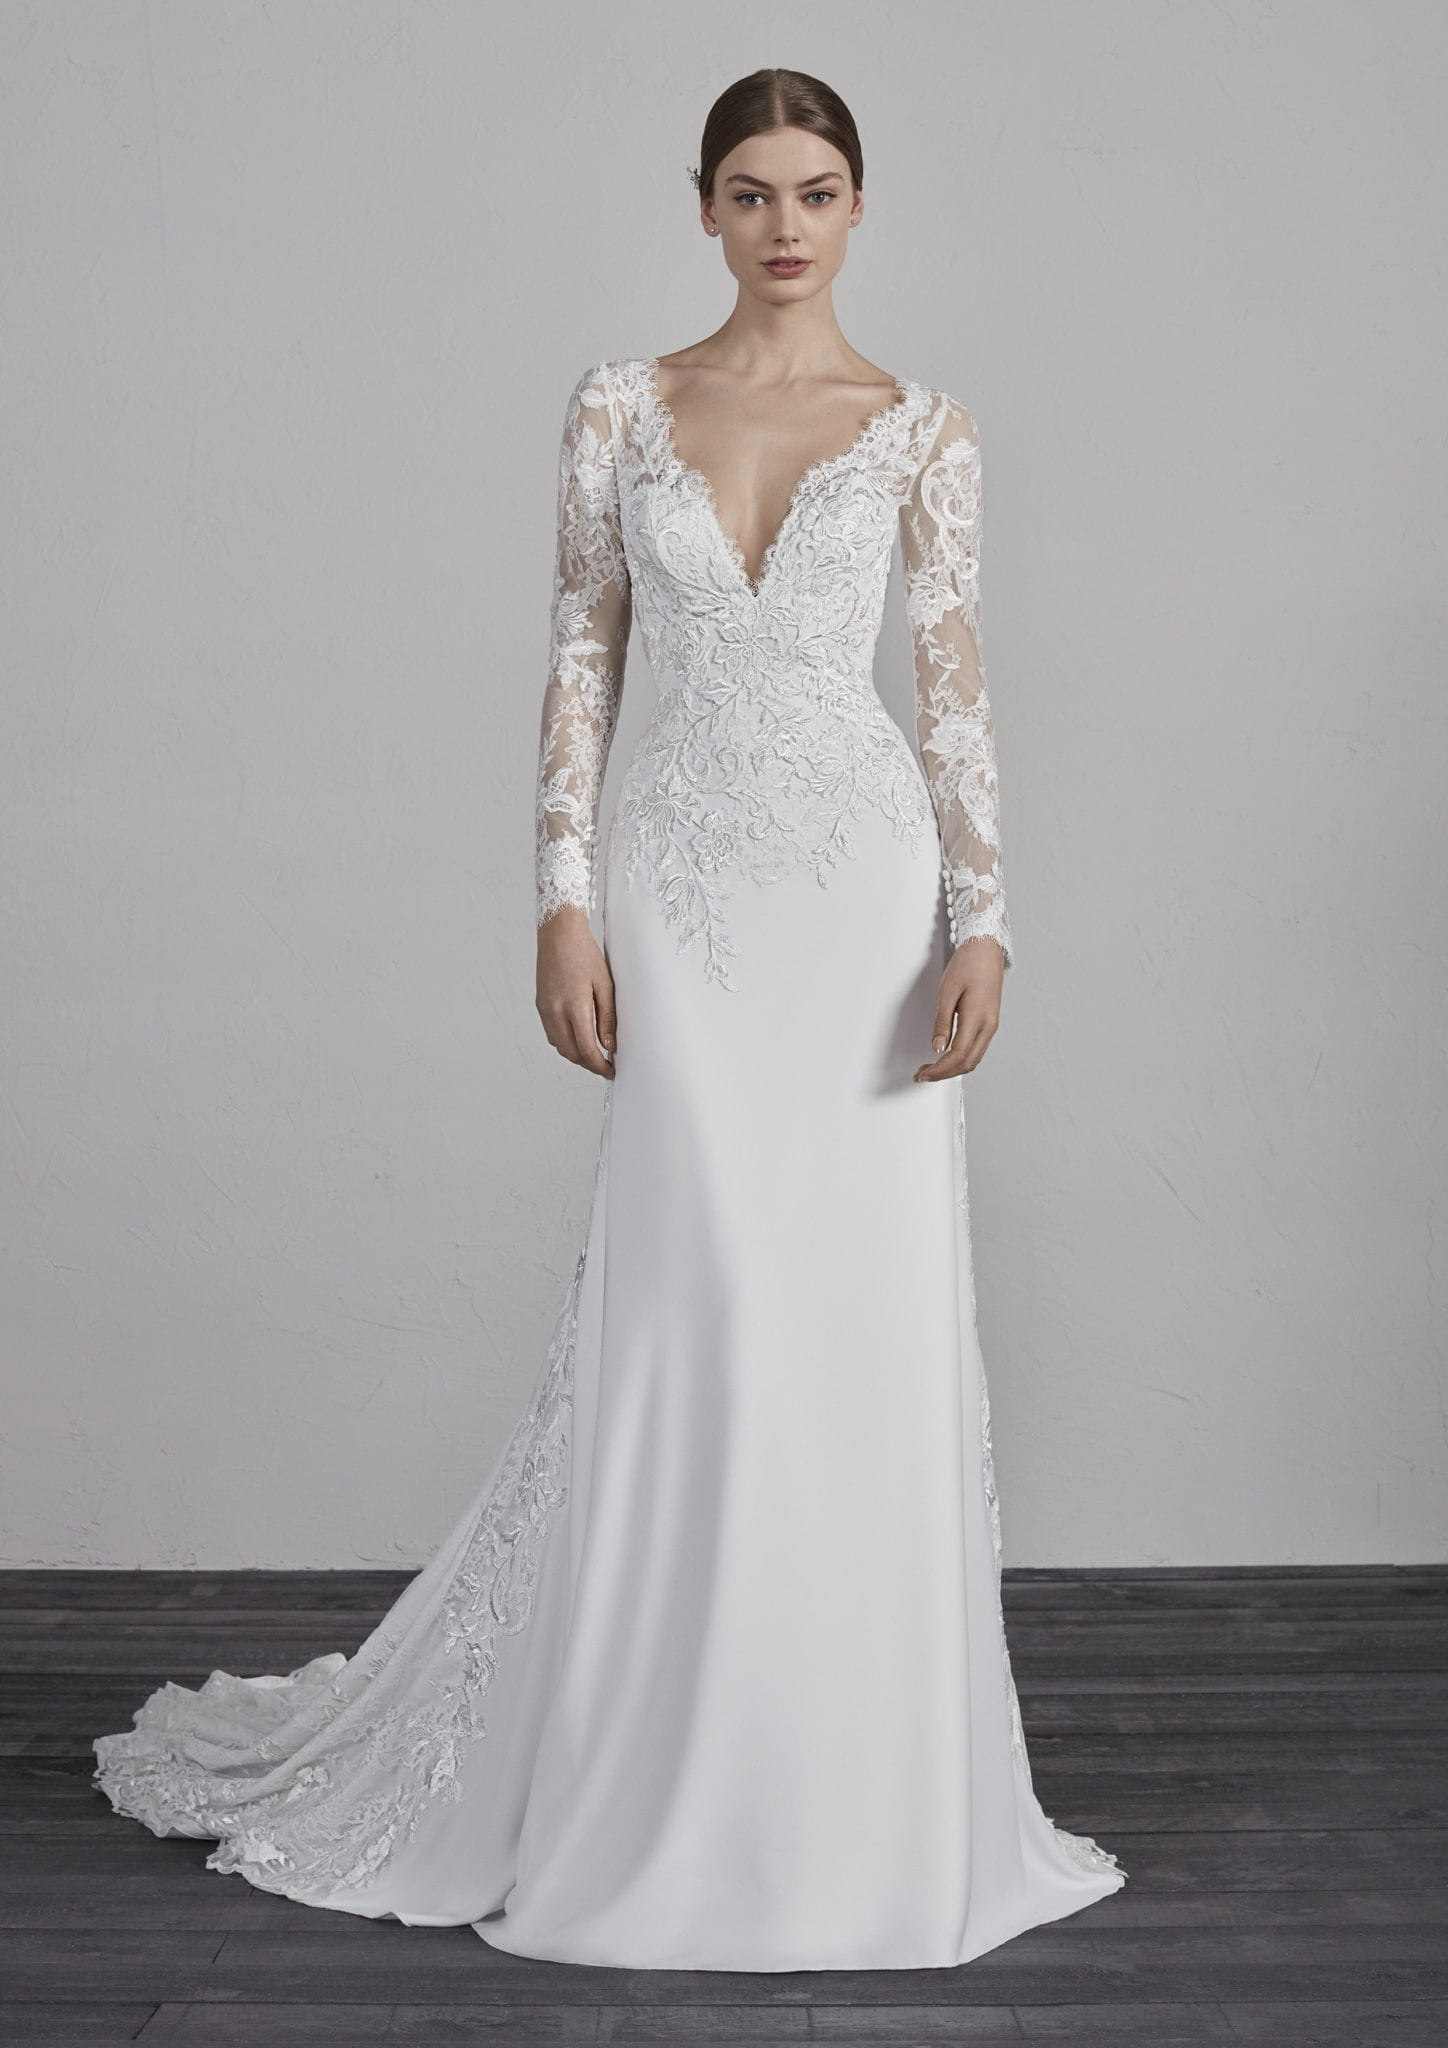 Enam Wedding Dress